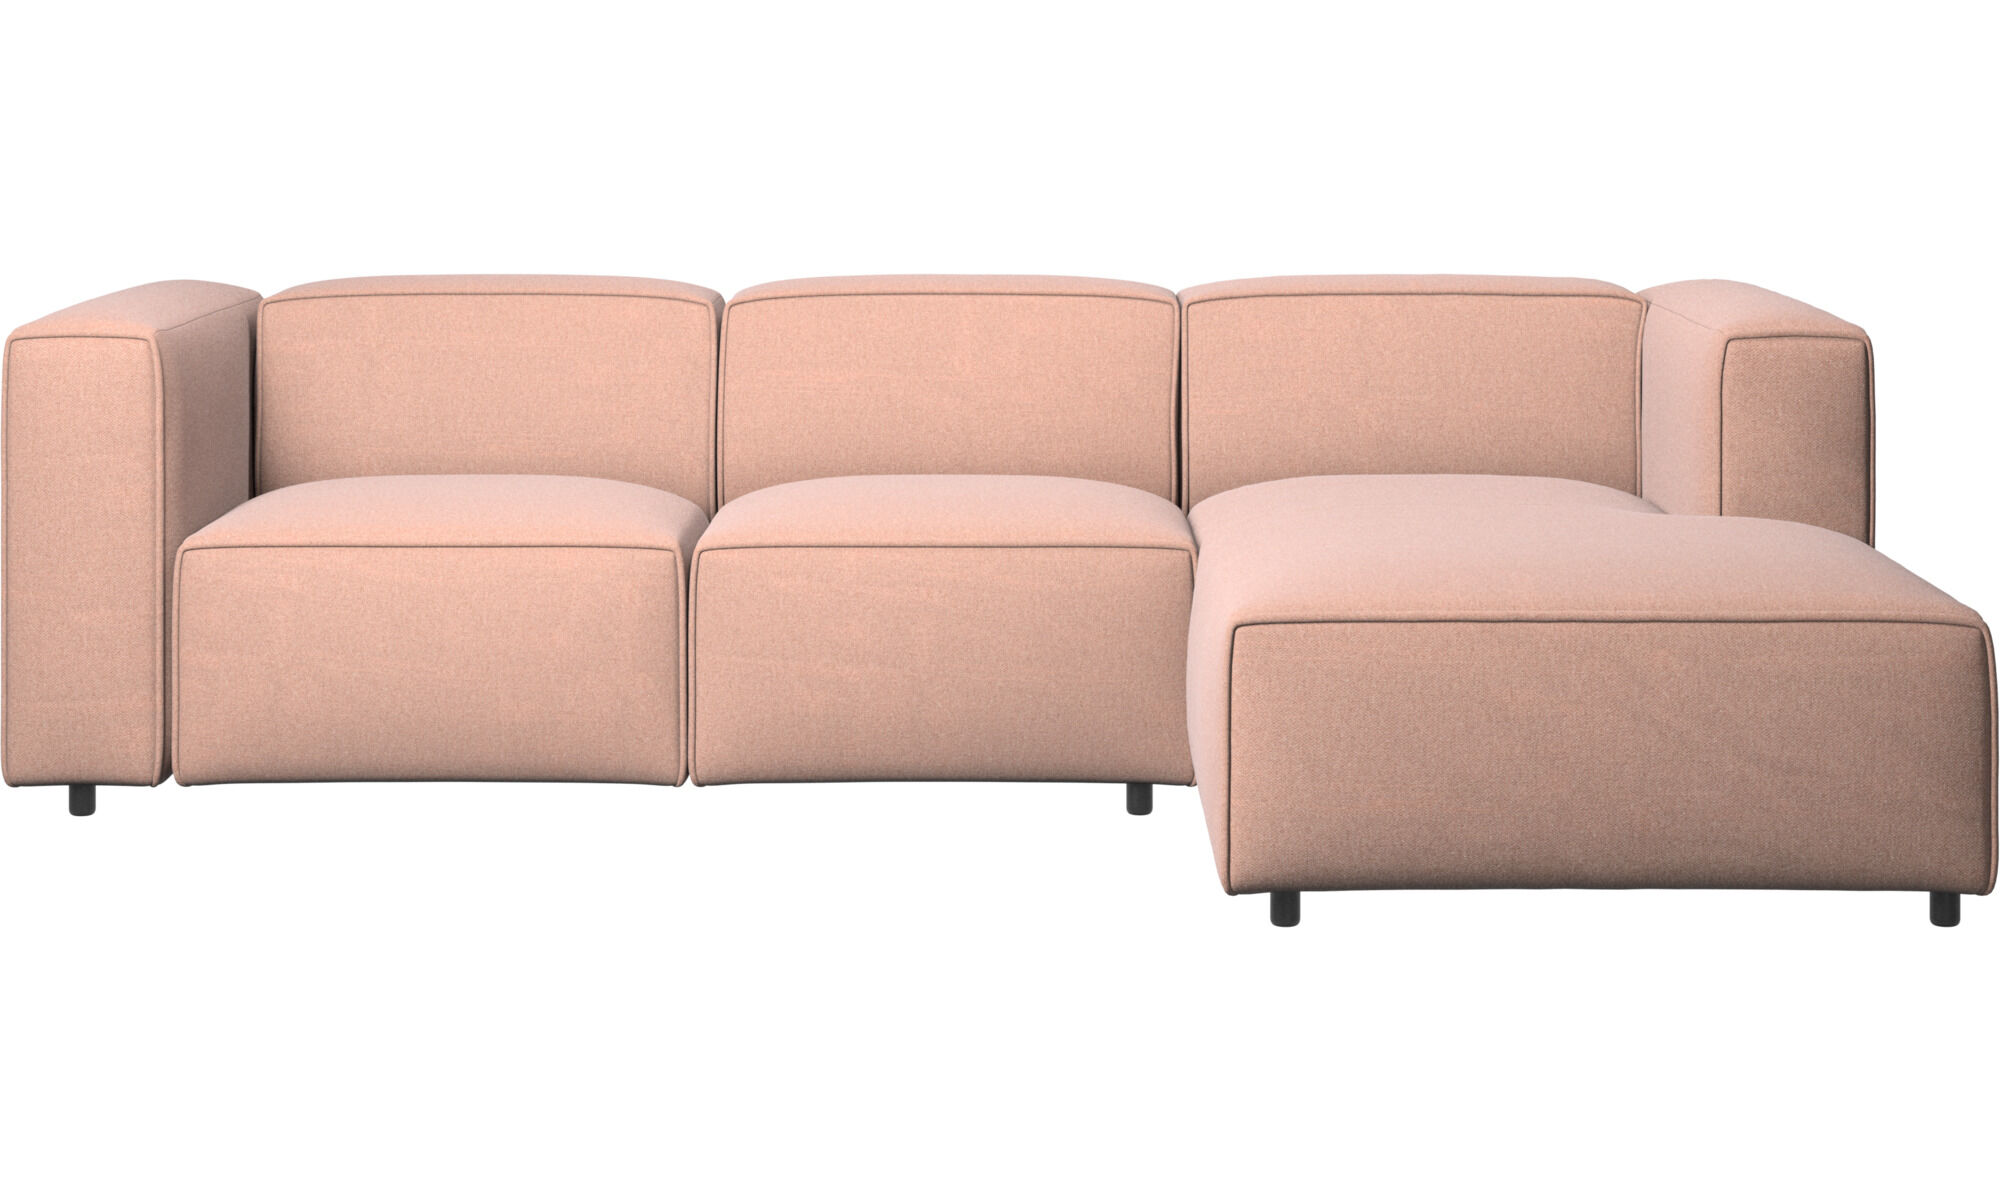 modern chaise longue sofas quality from boconcept rh boconcept com chase lounges outside chase lounges outside